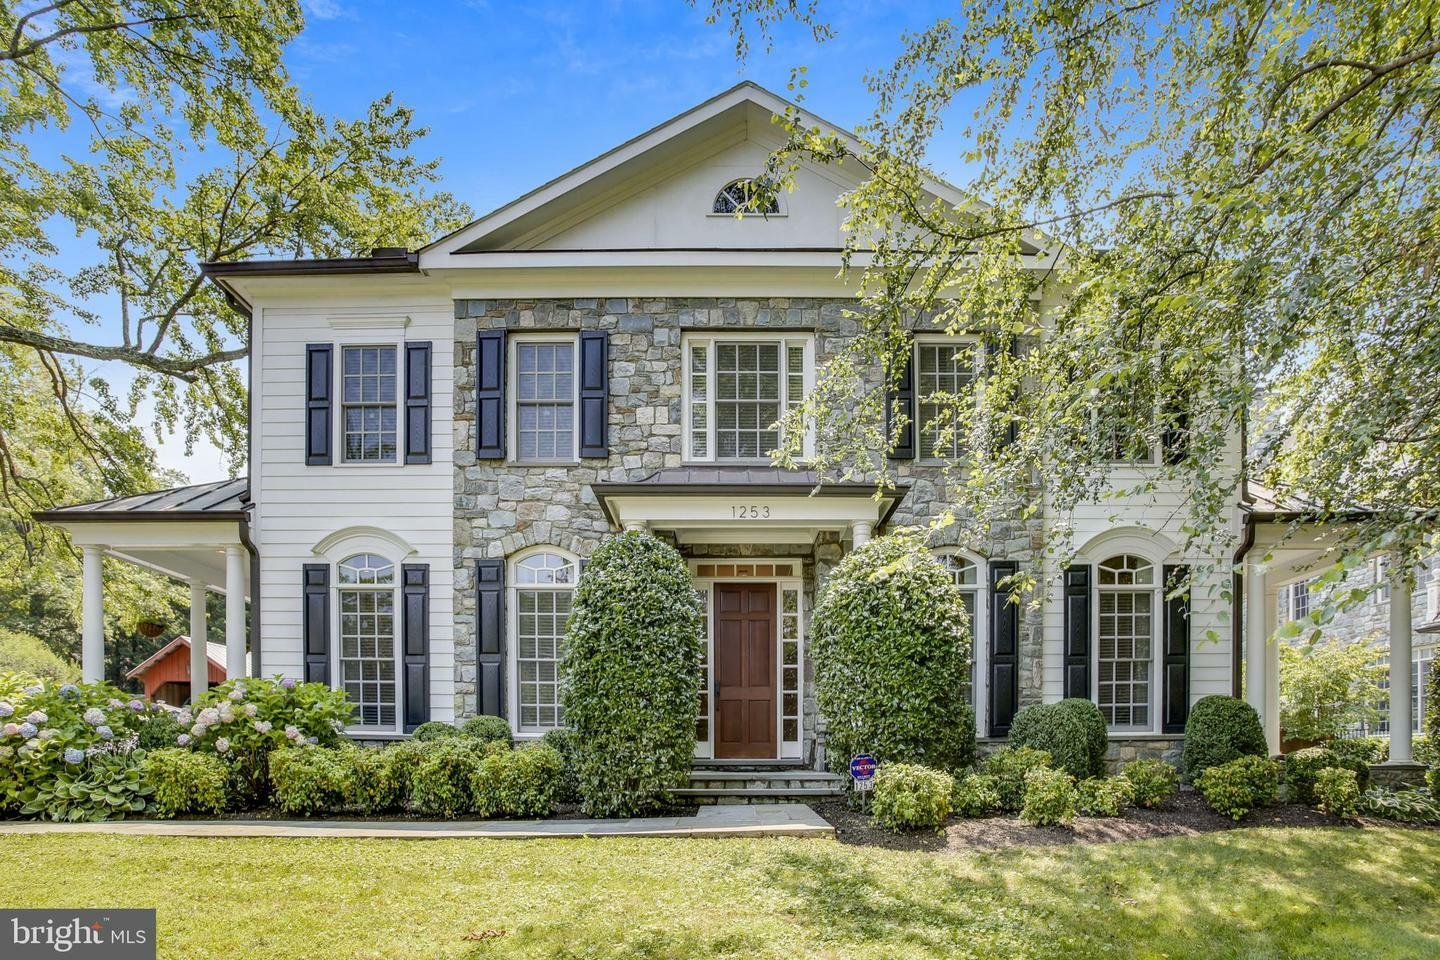 House in McLean, Virginia, United States 1 - 11531362